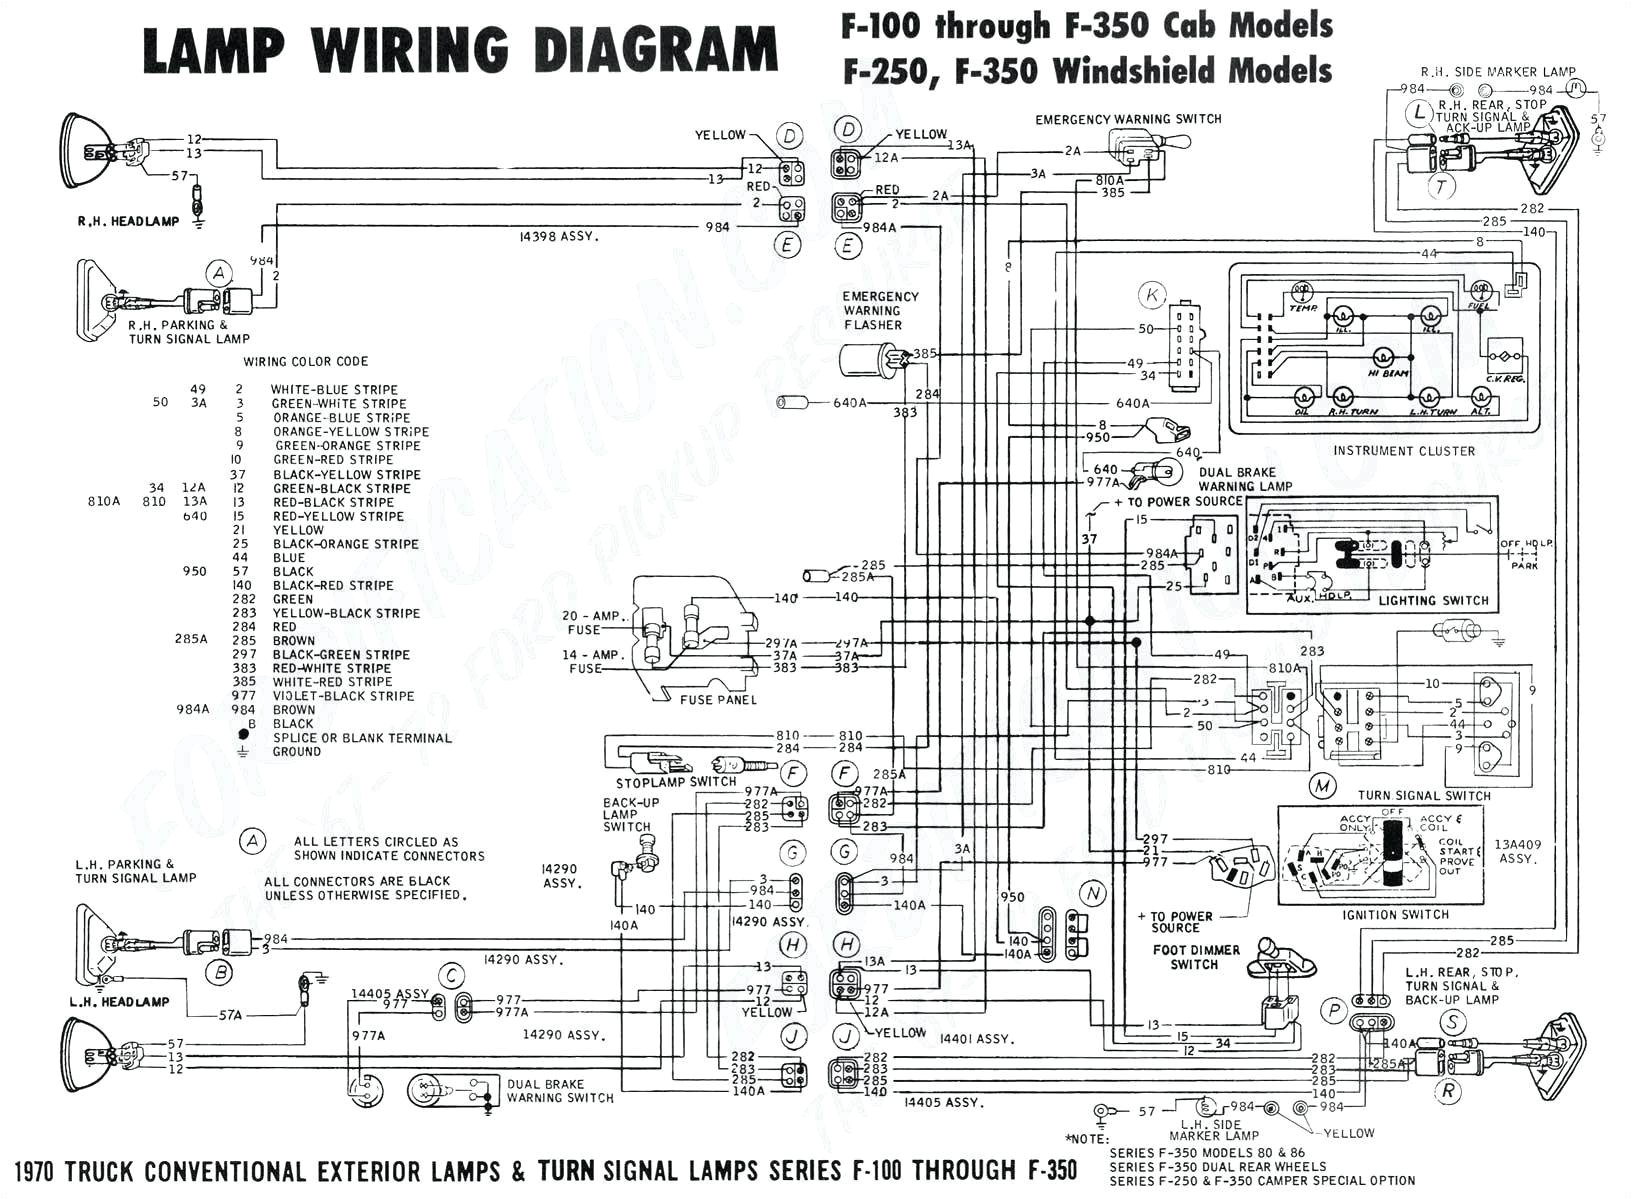 toyota corolla fog light wiring diagram wiring diagram car fog lights new wiring diagram trailer lights fresh wiring diagram trailer australia 5j jpg